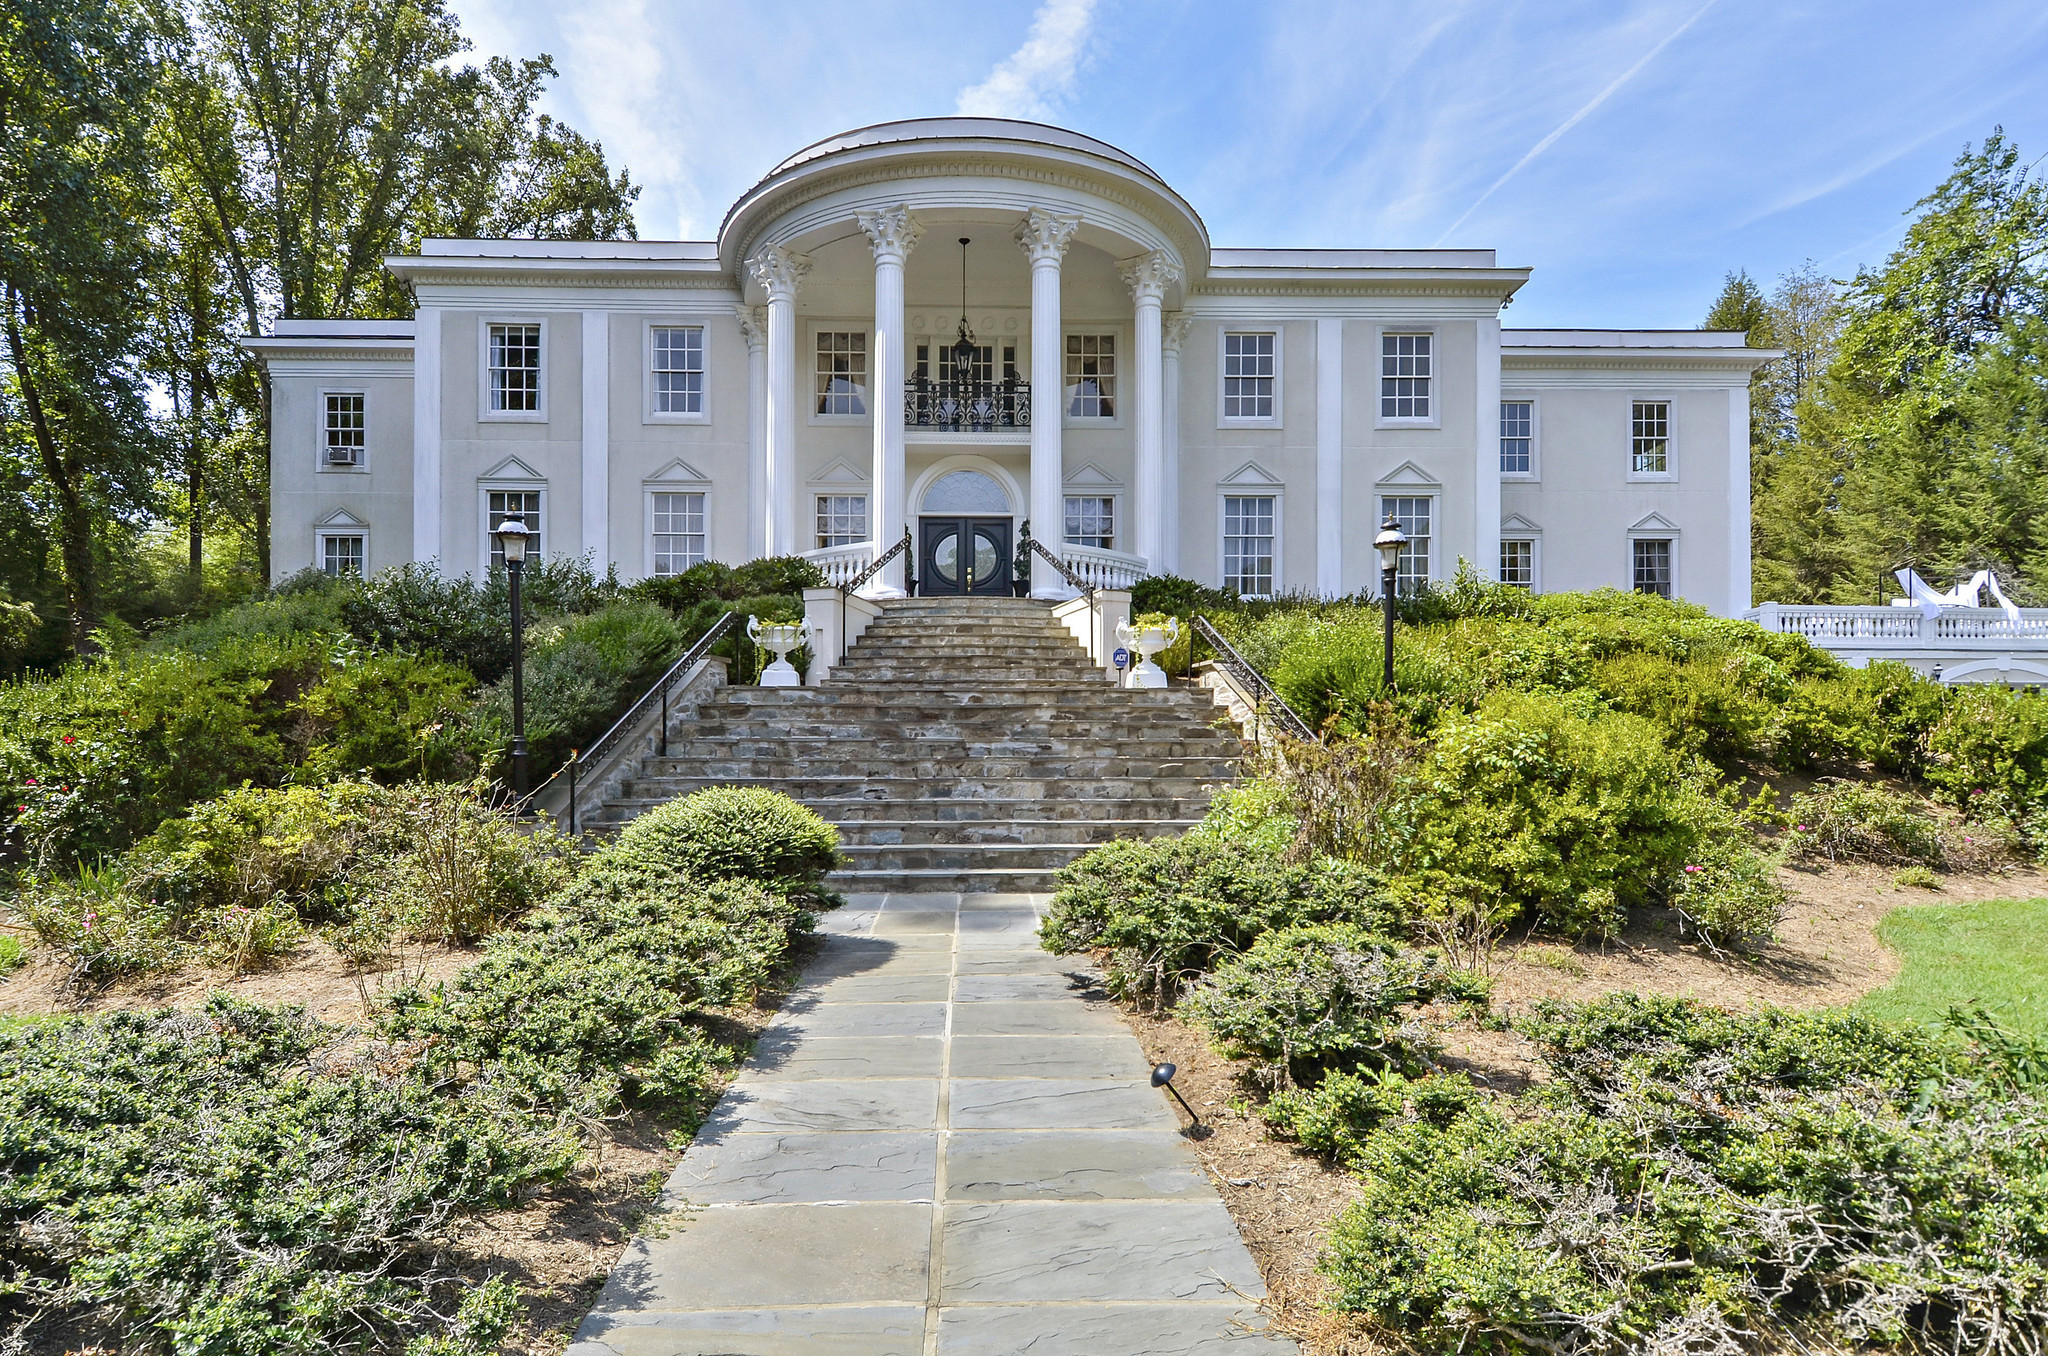 2 White House Look Alikes For Sale In Virginia